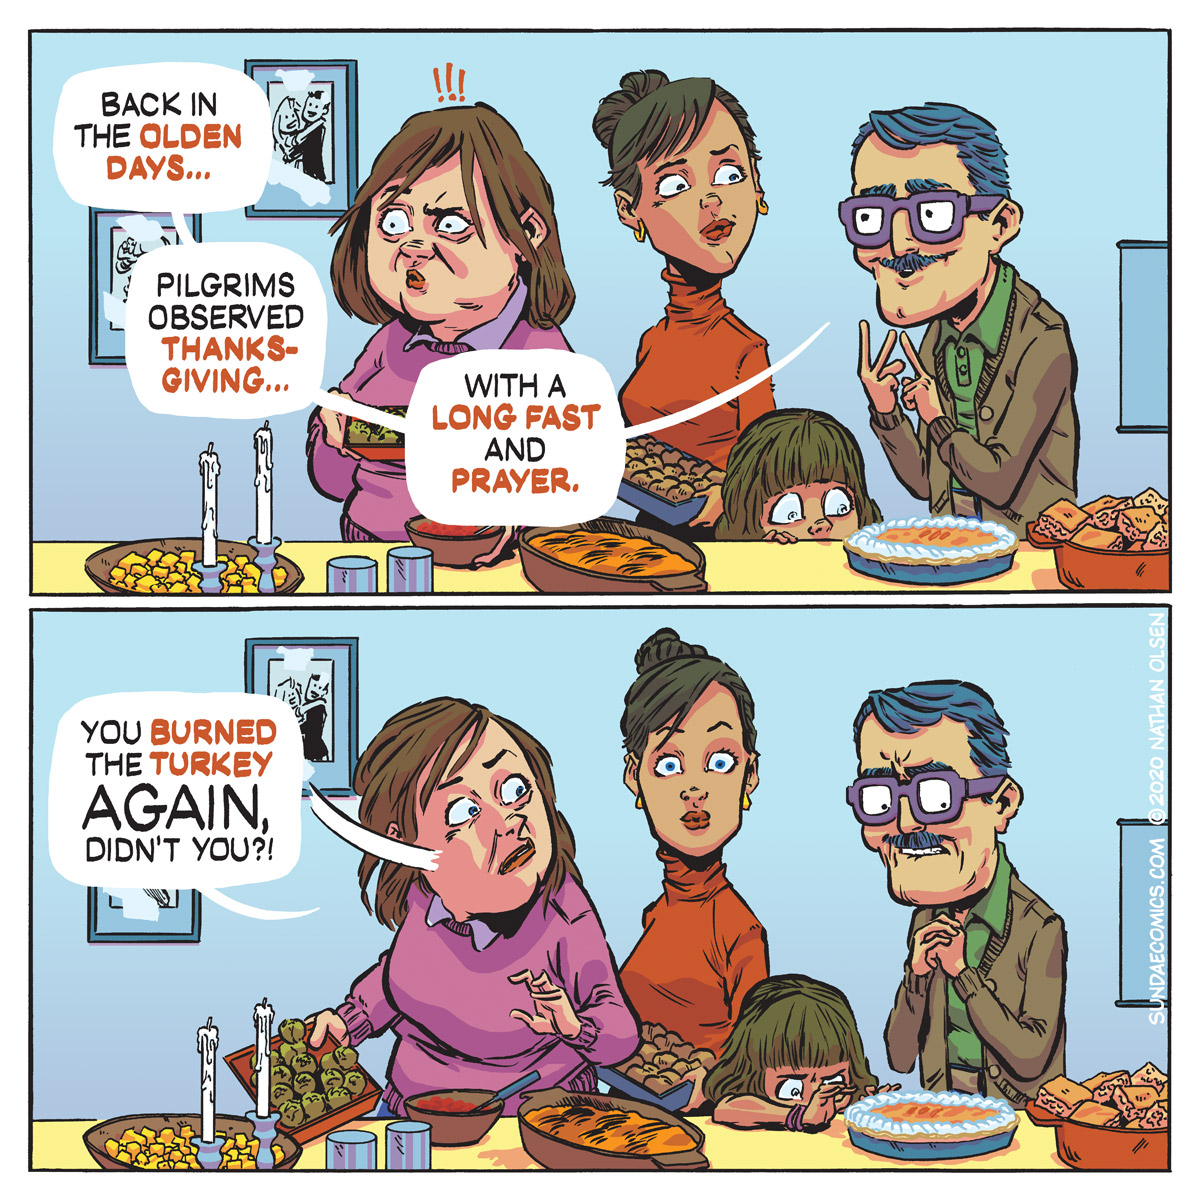 A webcomic about a Thanksgiving dinner, minus the dinner. And this isn't the first time. By the way, who likes pie?